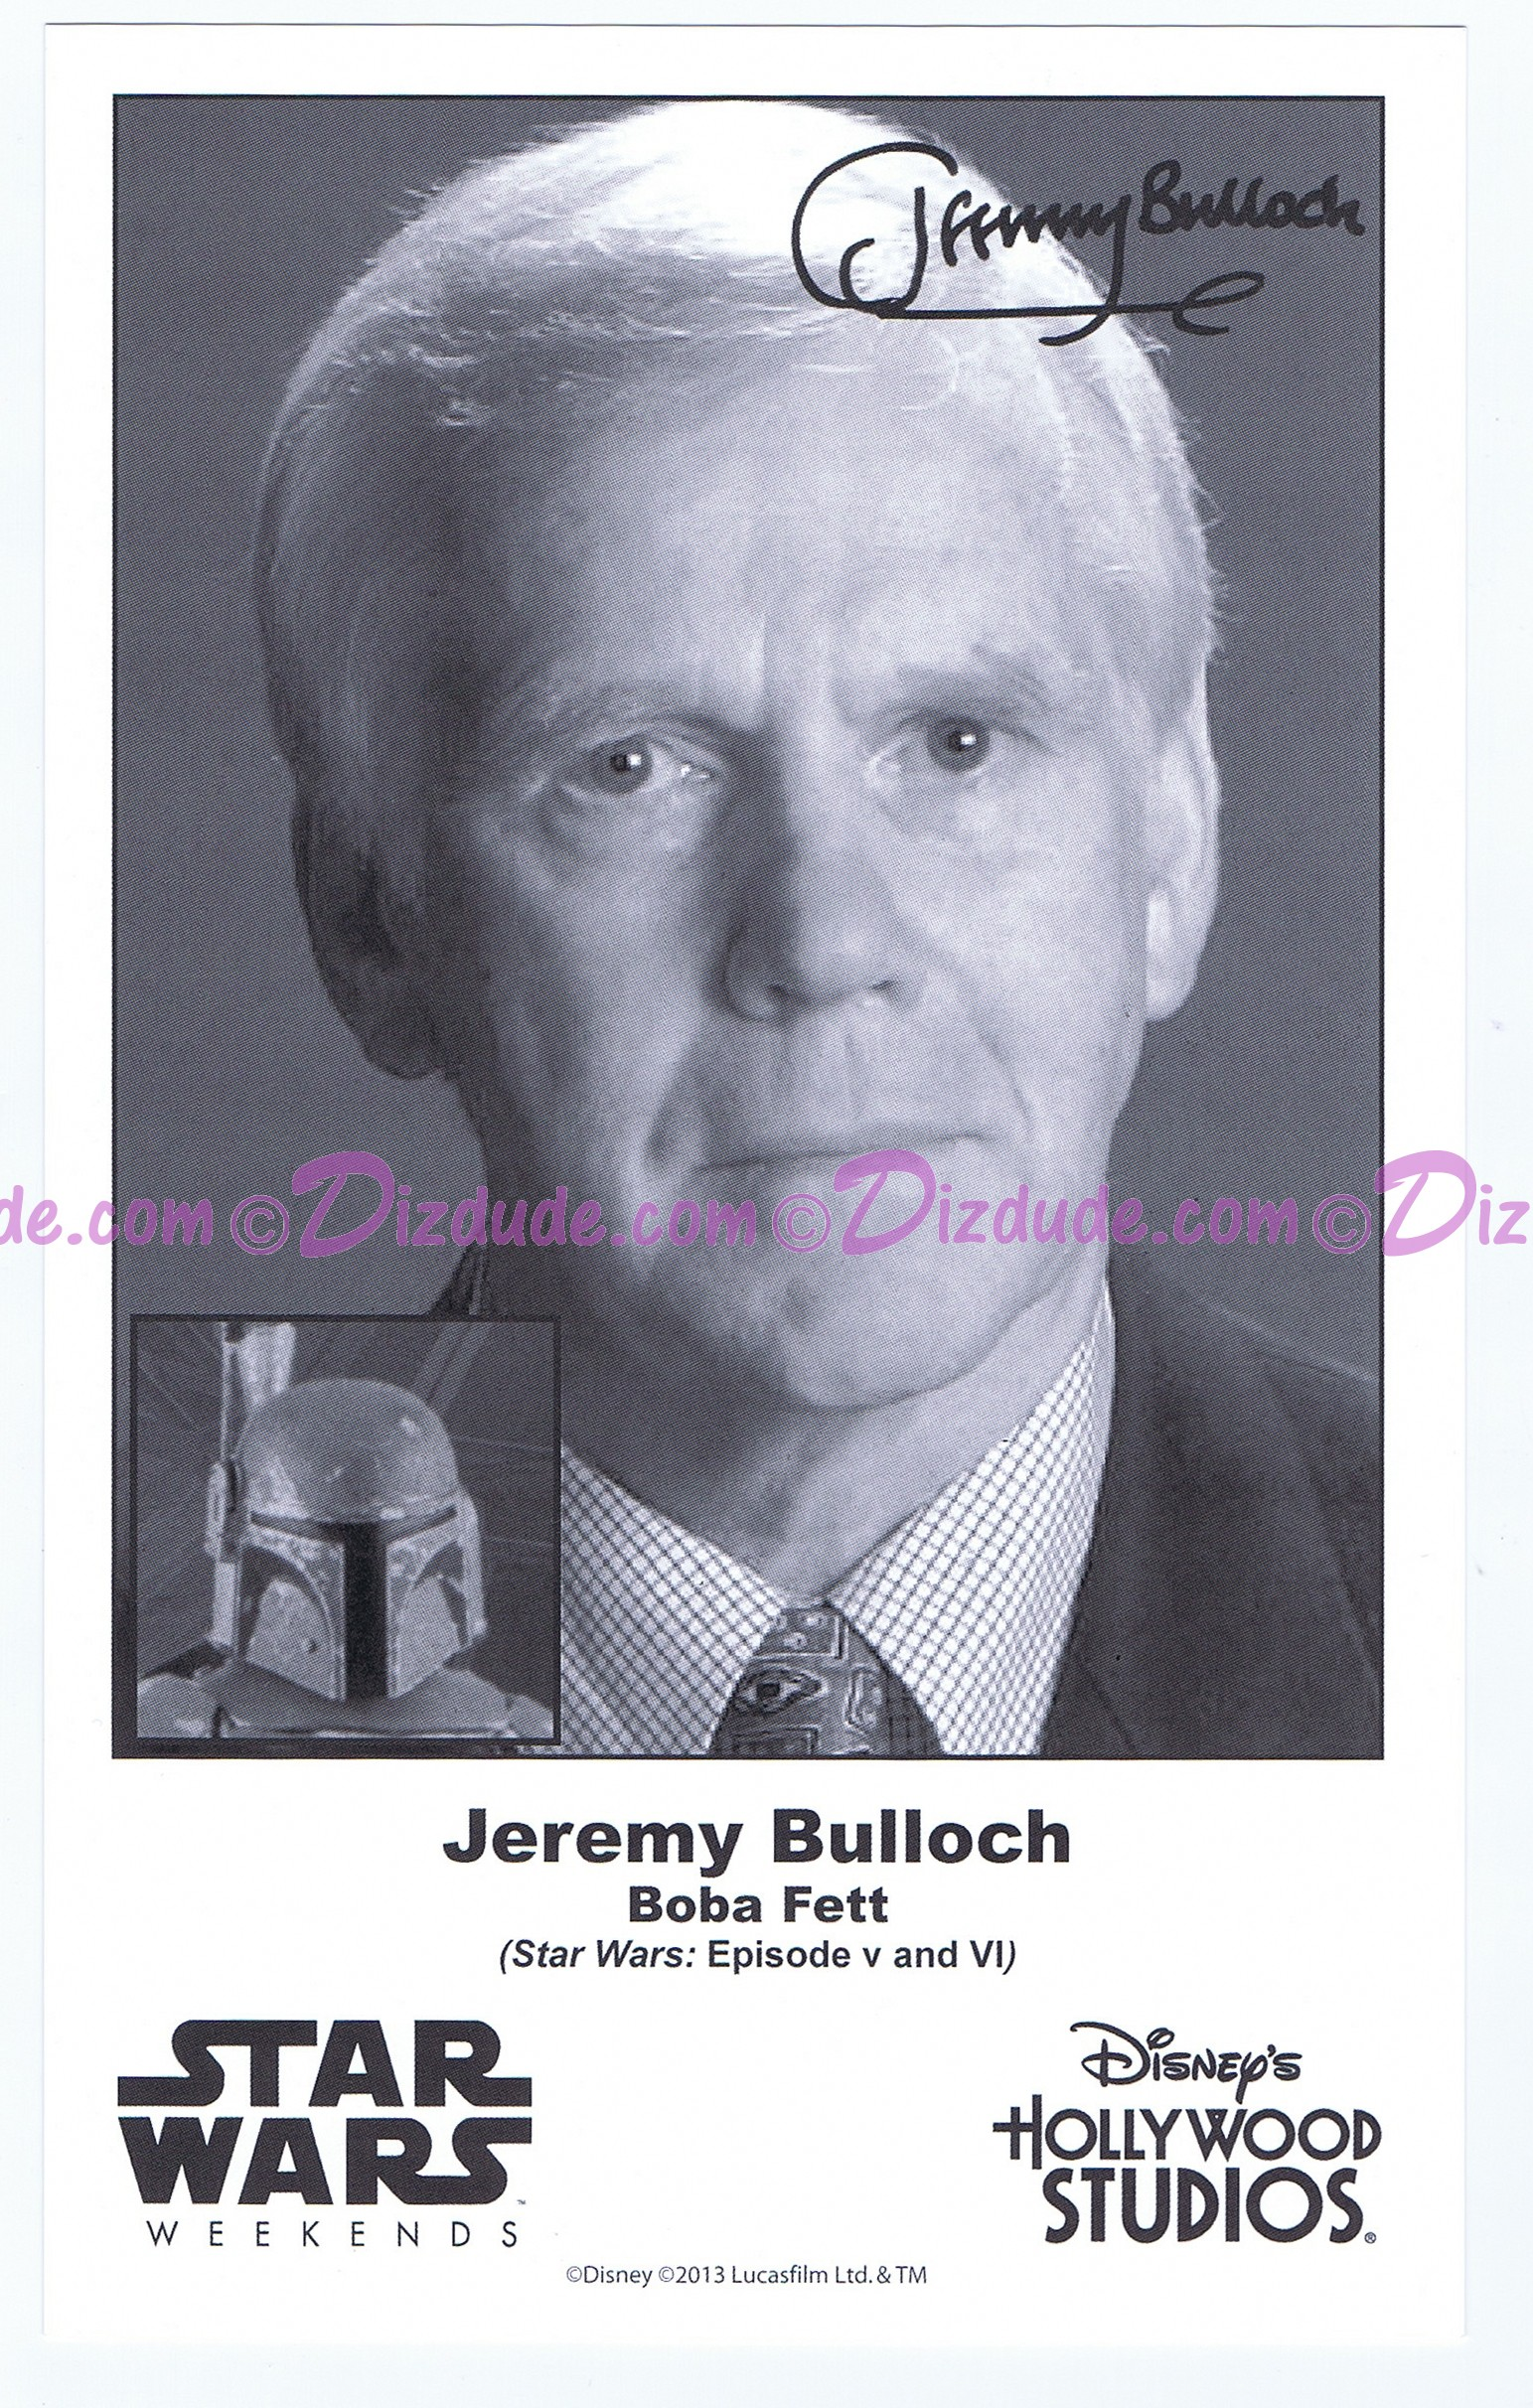 Jeremy Bulloch who played Boba Fett Presigned Official Star Wars Weekends 2013 Celebrity Collector Photo © Dizdude.com